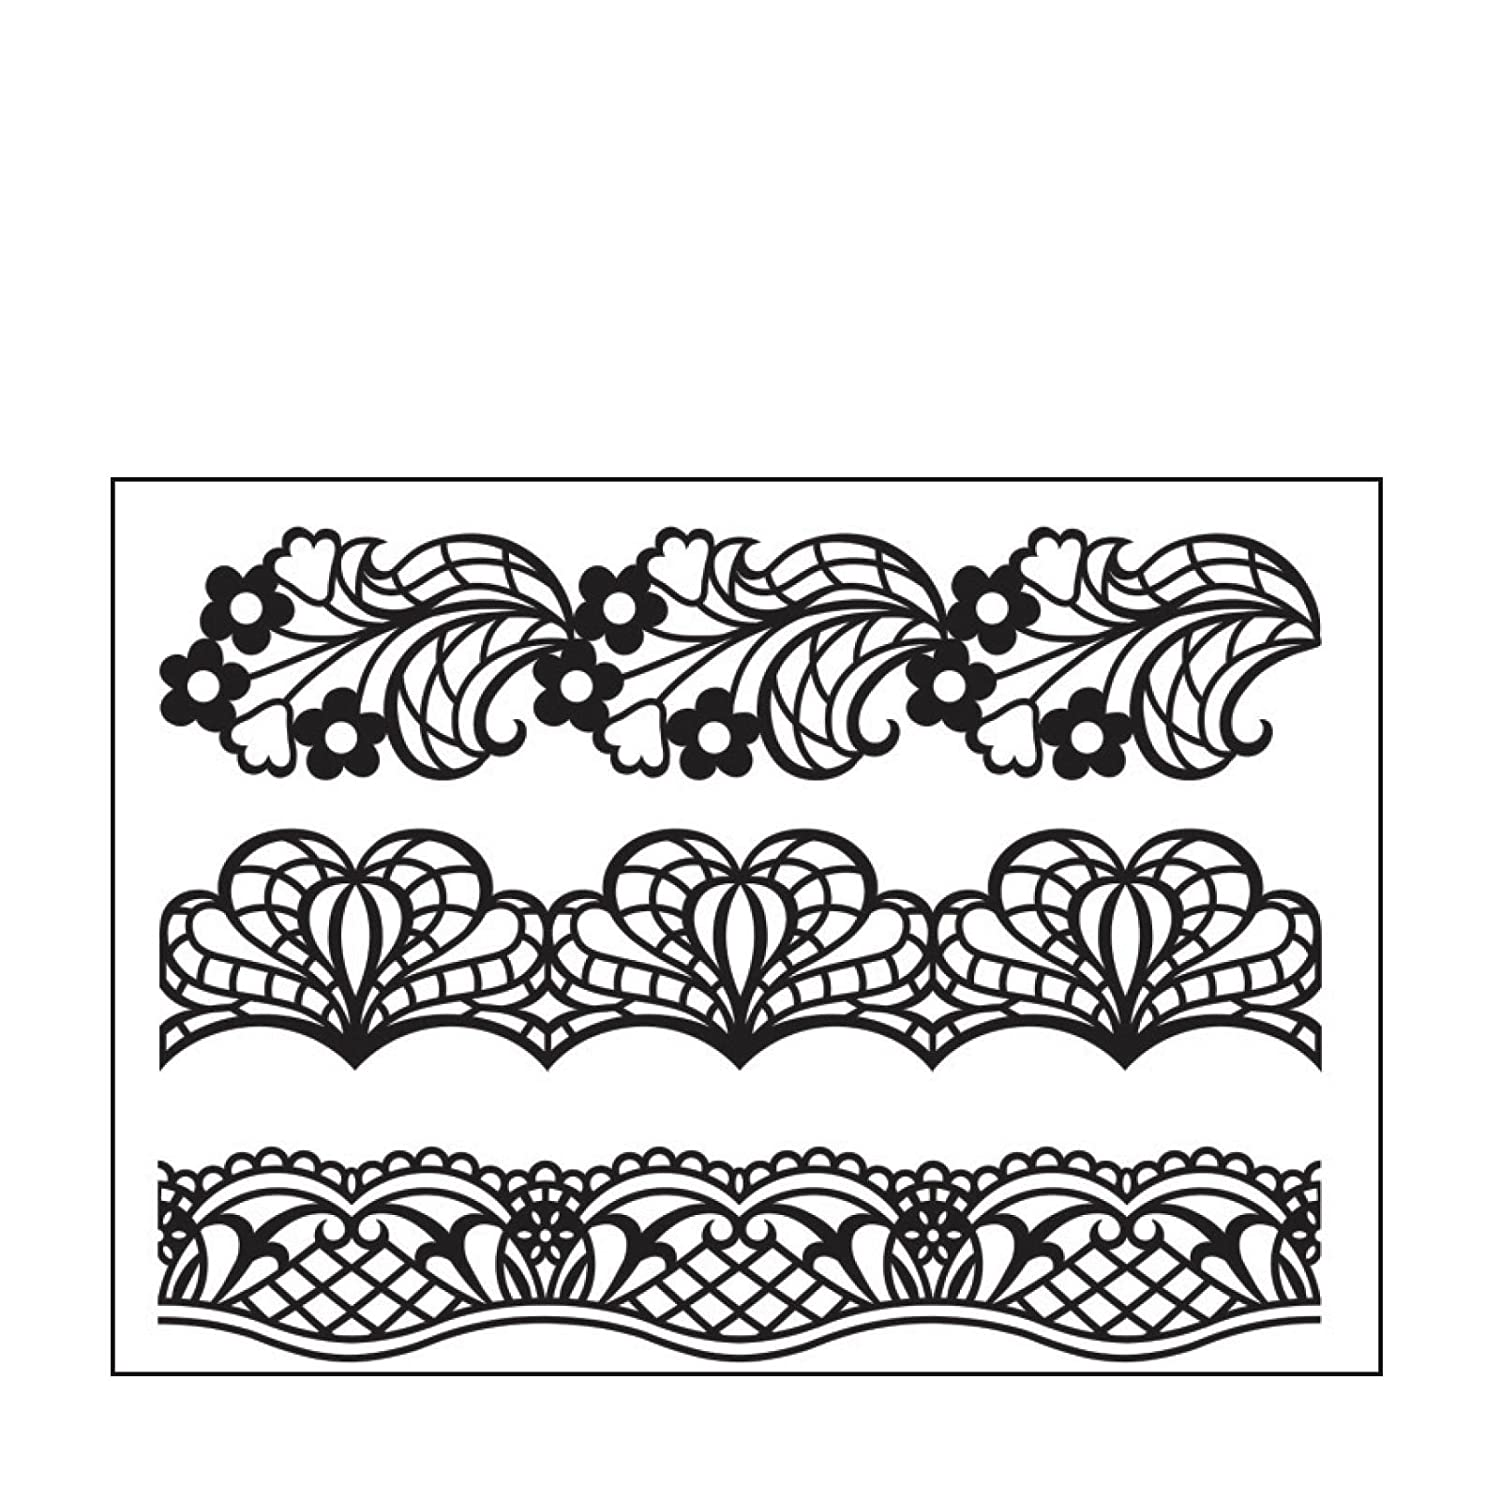 10.8 x 14.6 x 0.3 cm Clear//White Darice Template Border Doily-Embossing Folder for Scrapbooking and Card Making